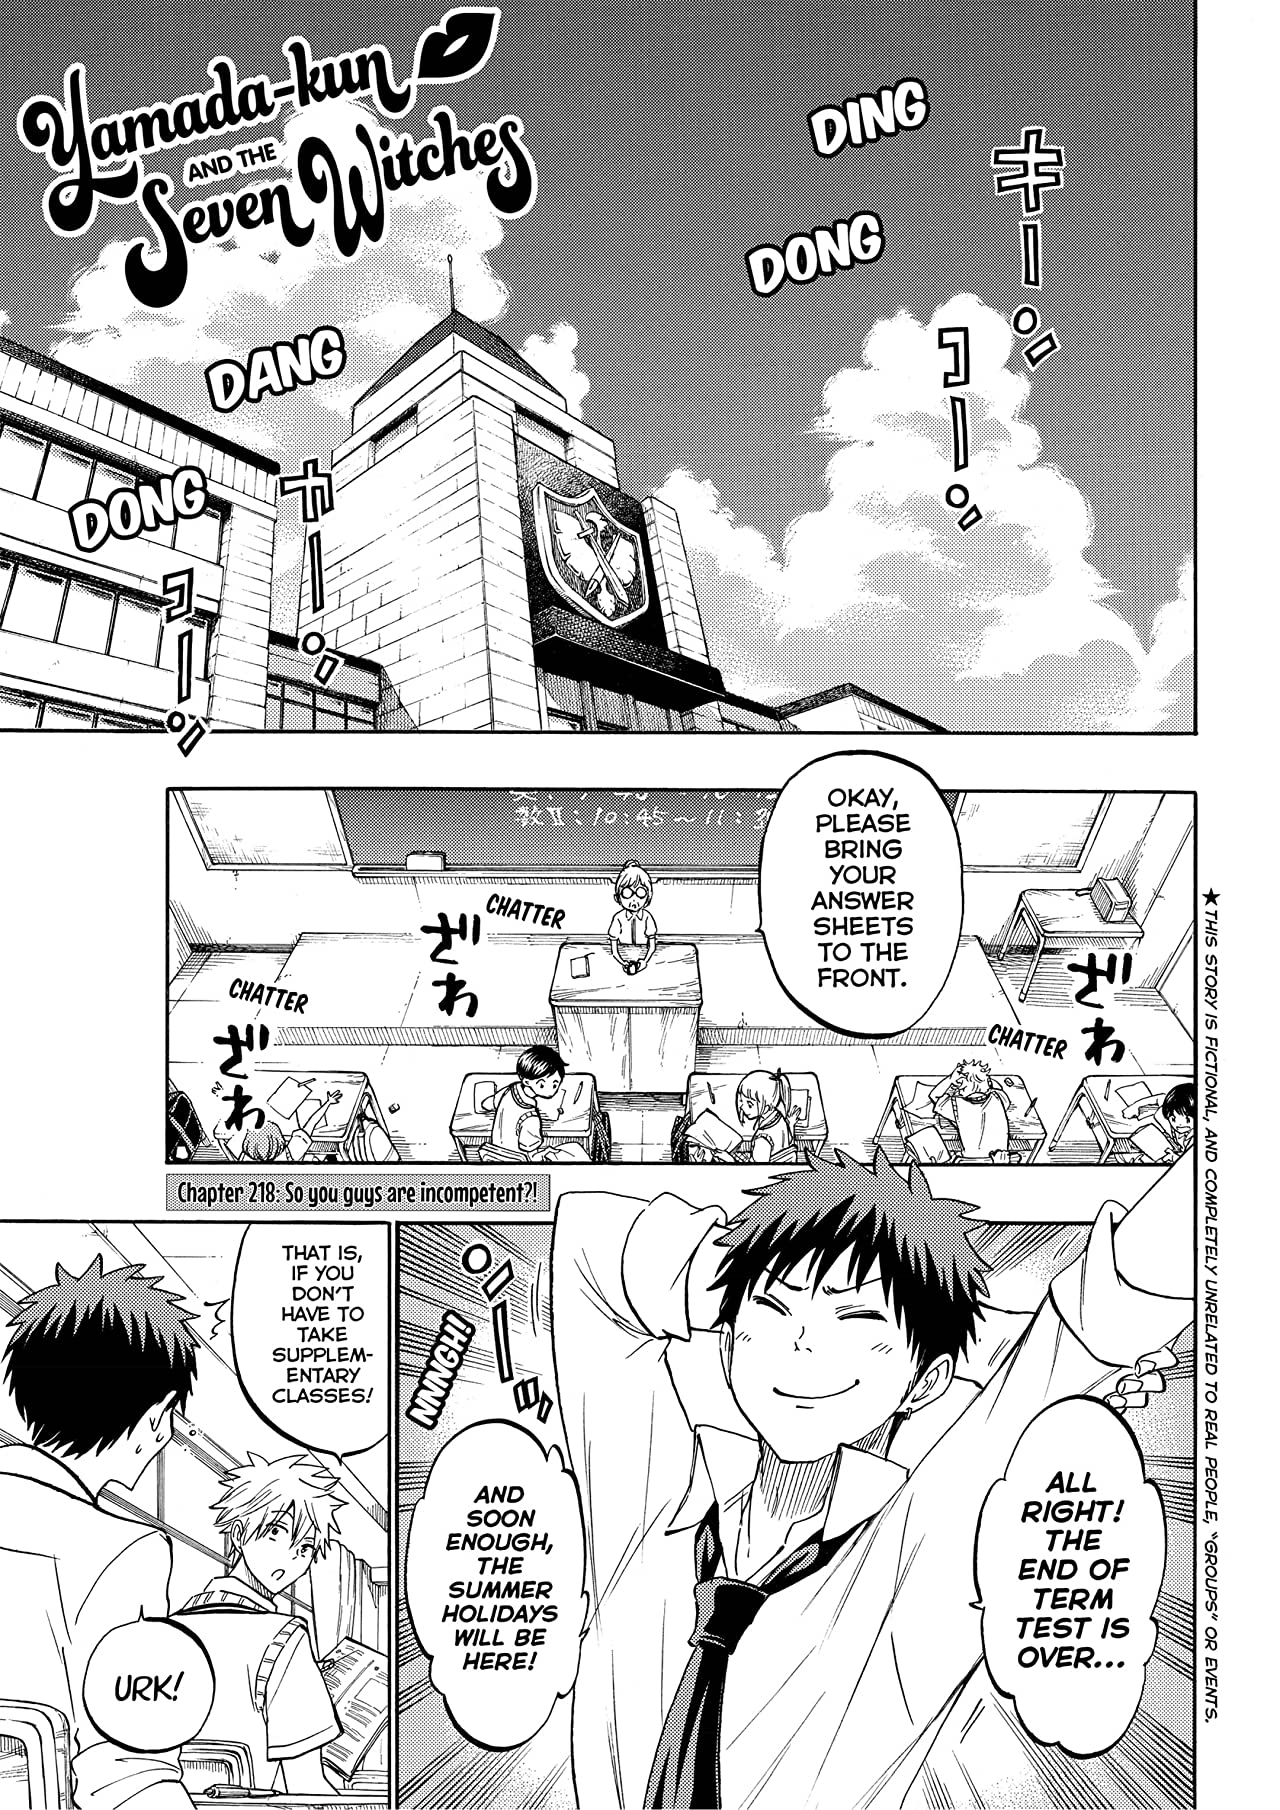 Yamada-kun and the Seven Witches #218